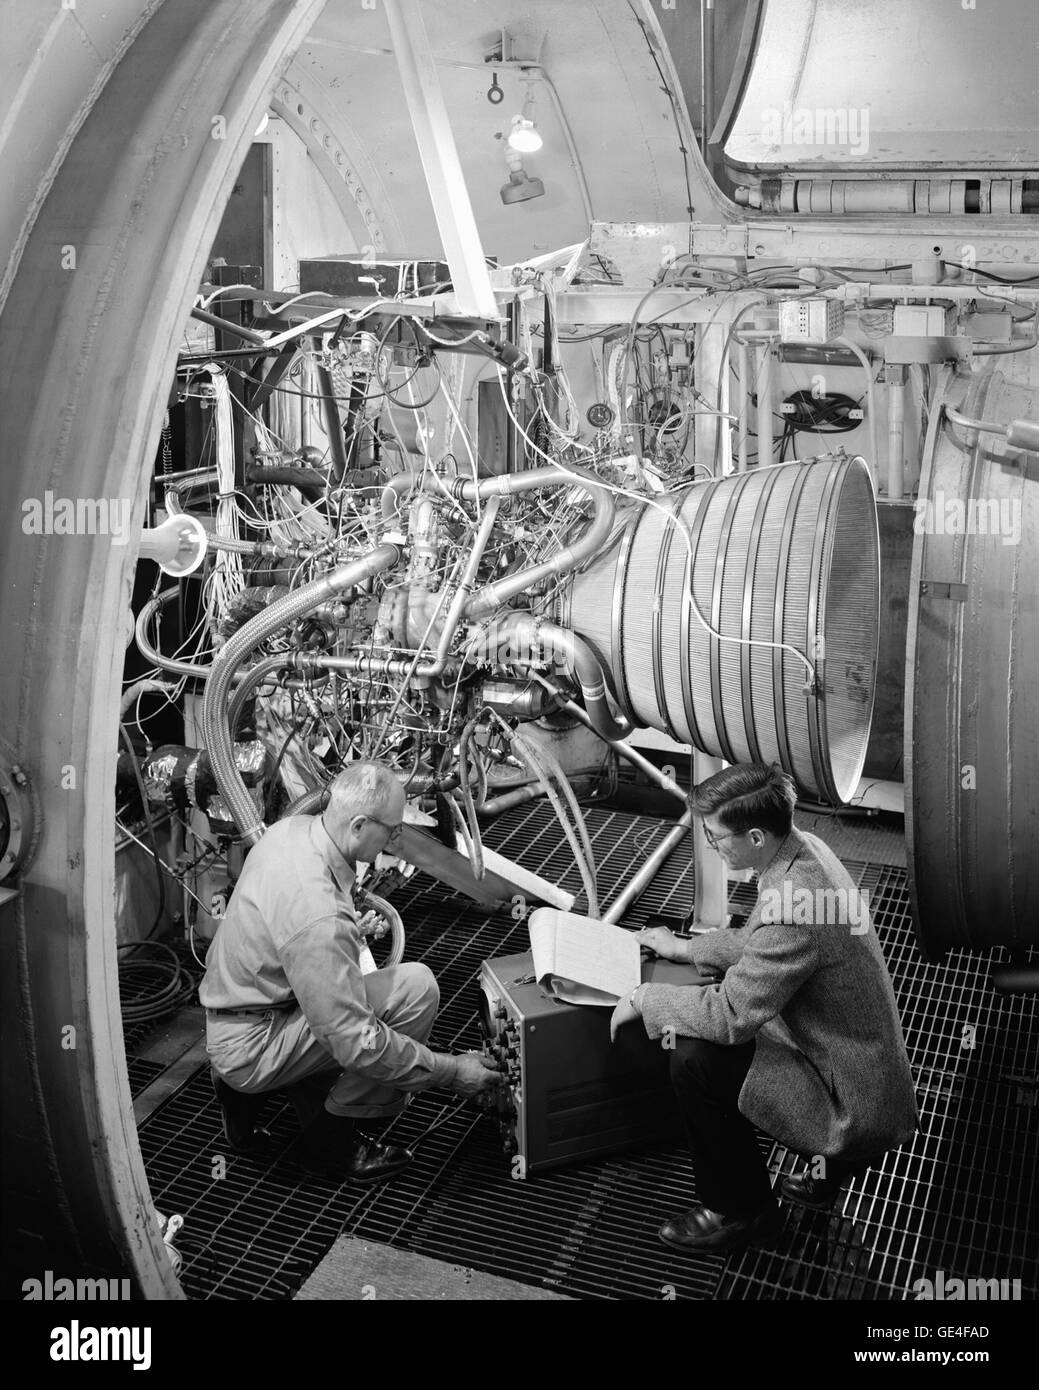 Centaur Rocket Installation in PSL - Propulsion Systems Laboratory #1. The RL-10 Rocket was developed by Pratt and - Stock Image